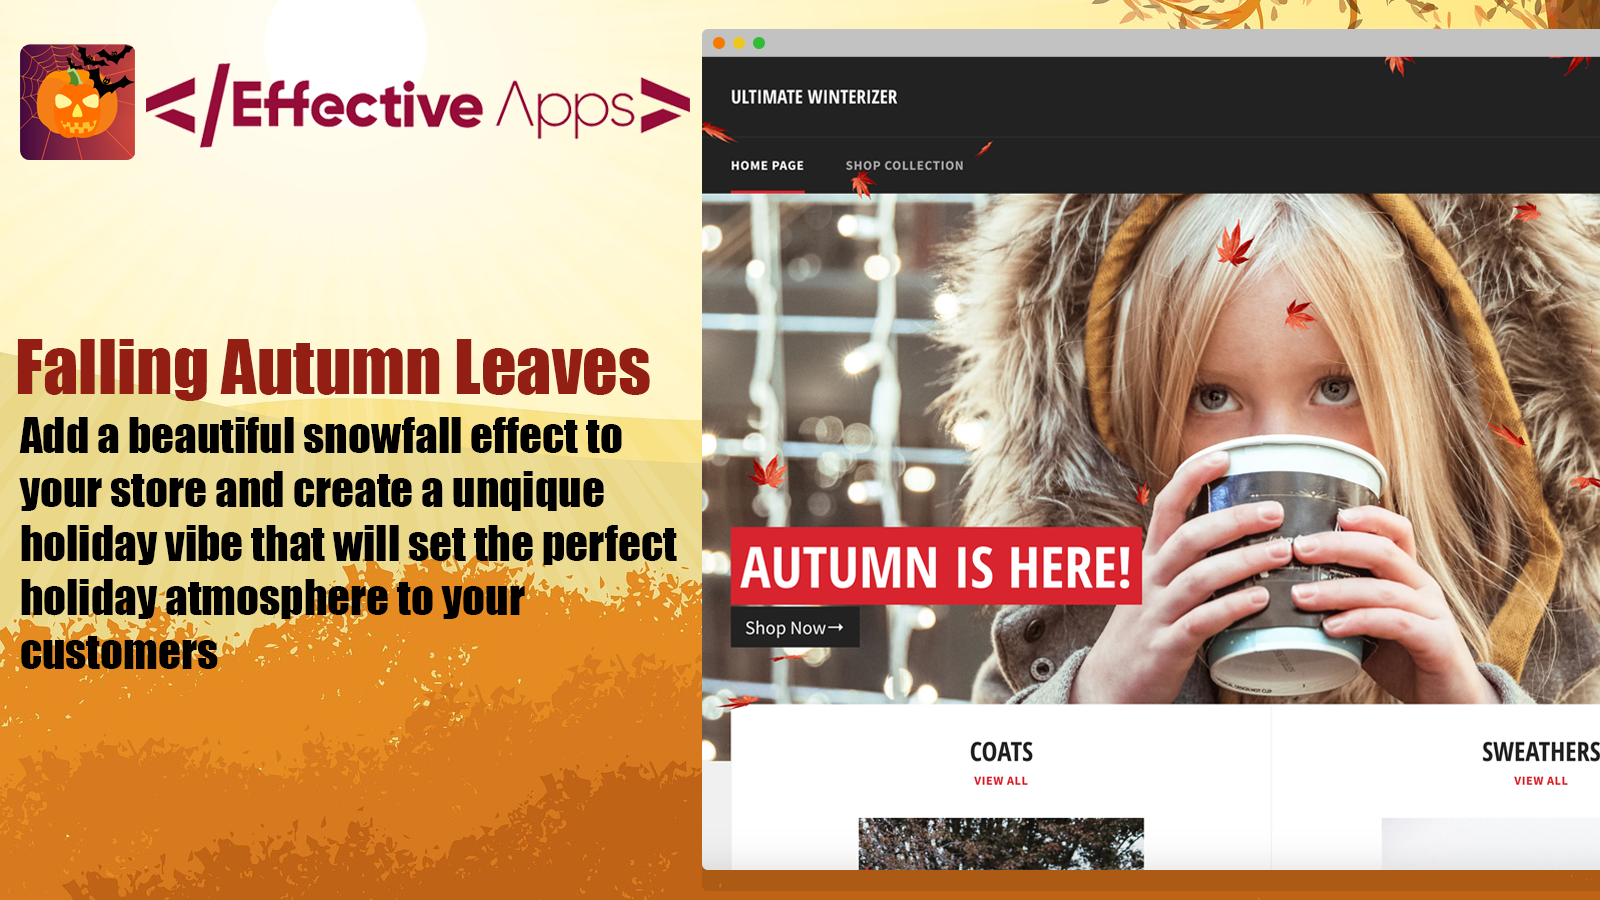 The falling autumn leaves effect in action